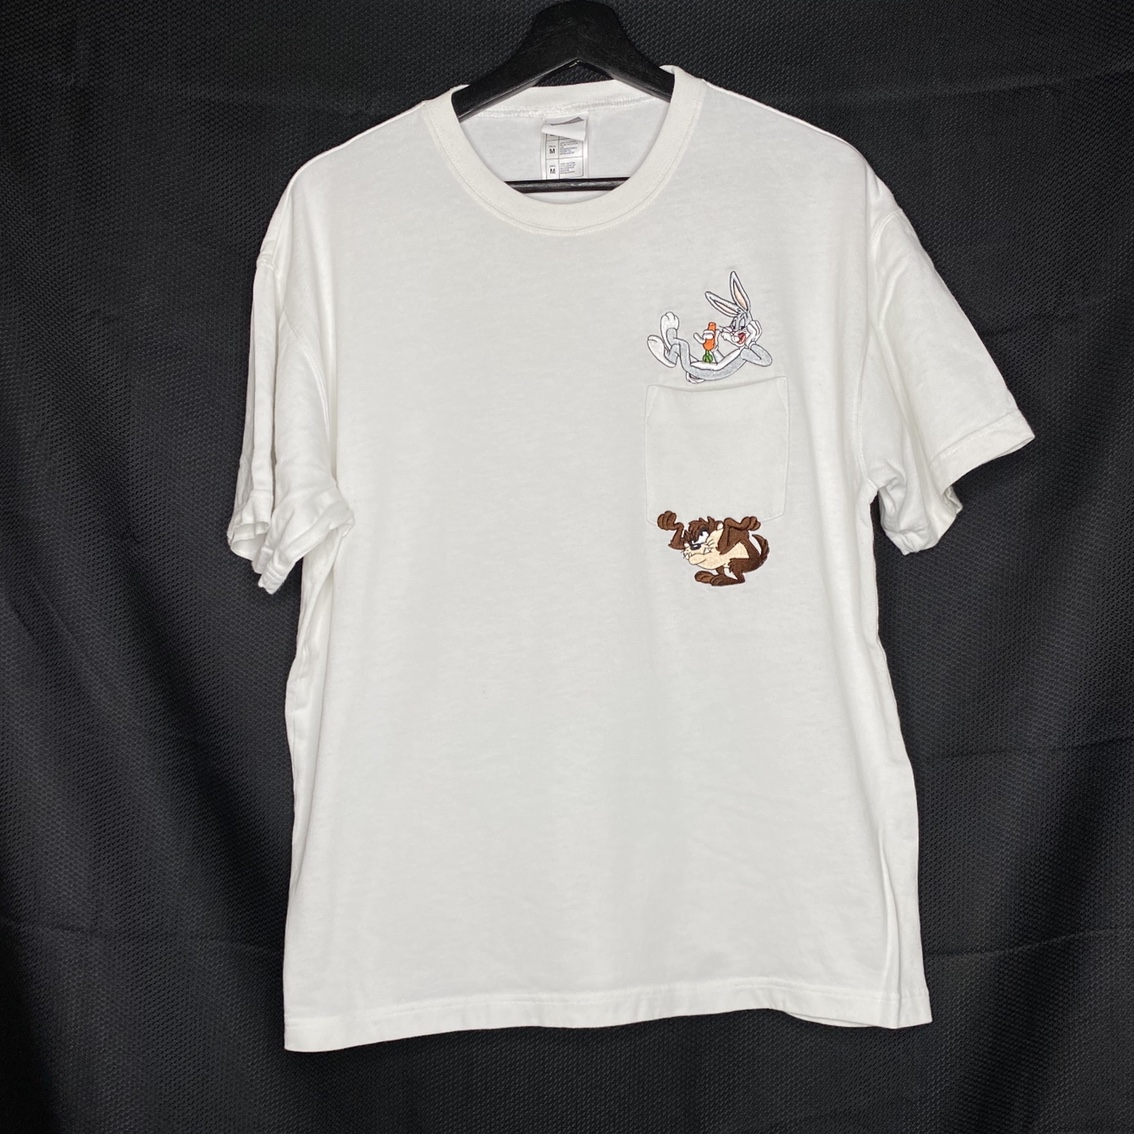 Product Image 1 - Vintage Looney Tunes Bugs Bunny